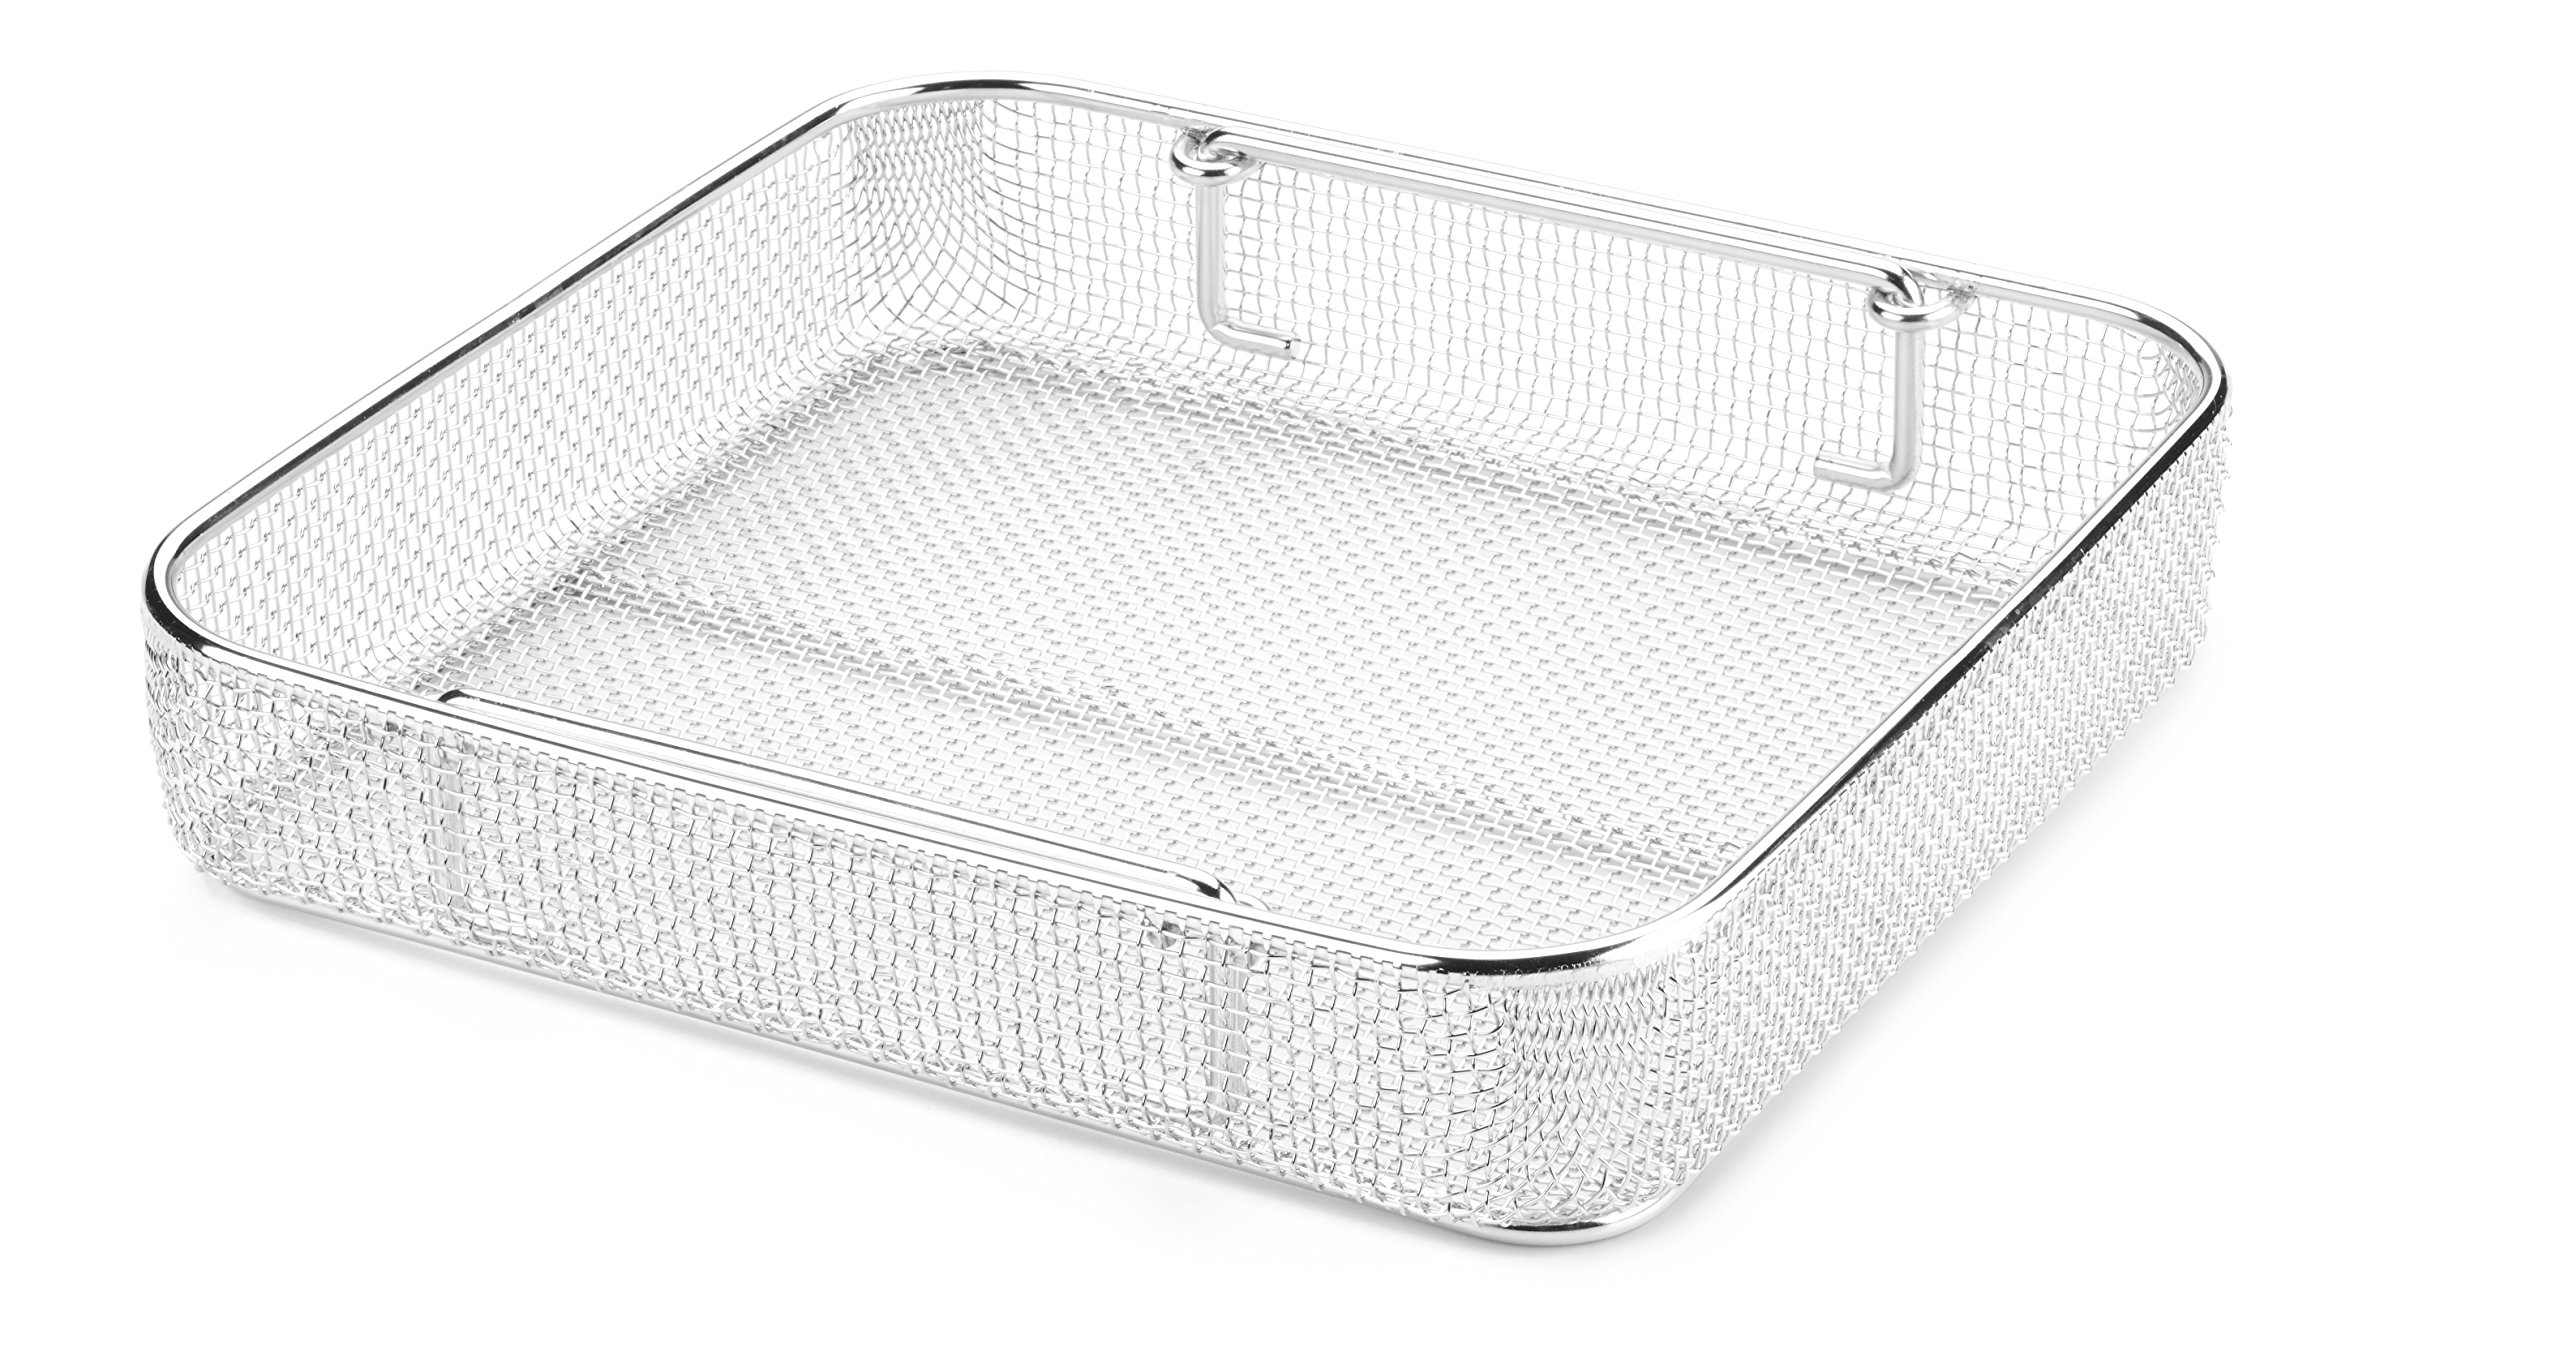 Key Surgical MT-9101 Micro Mesh Tray with Drop Handles, Stainless Steel, 250 mm x 240 mm x 50 mm